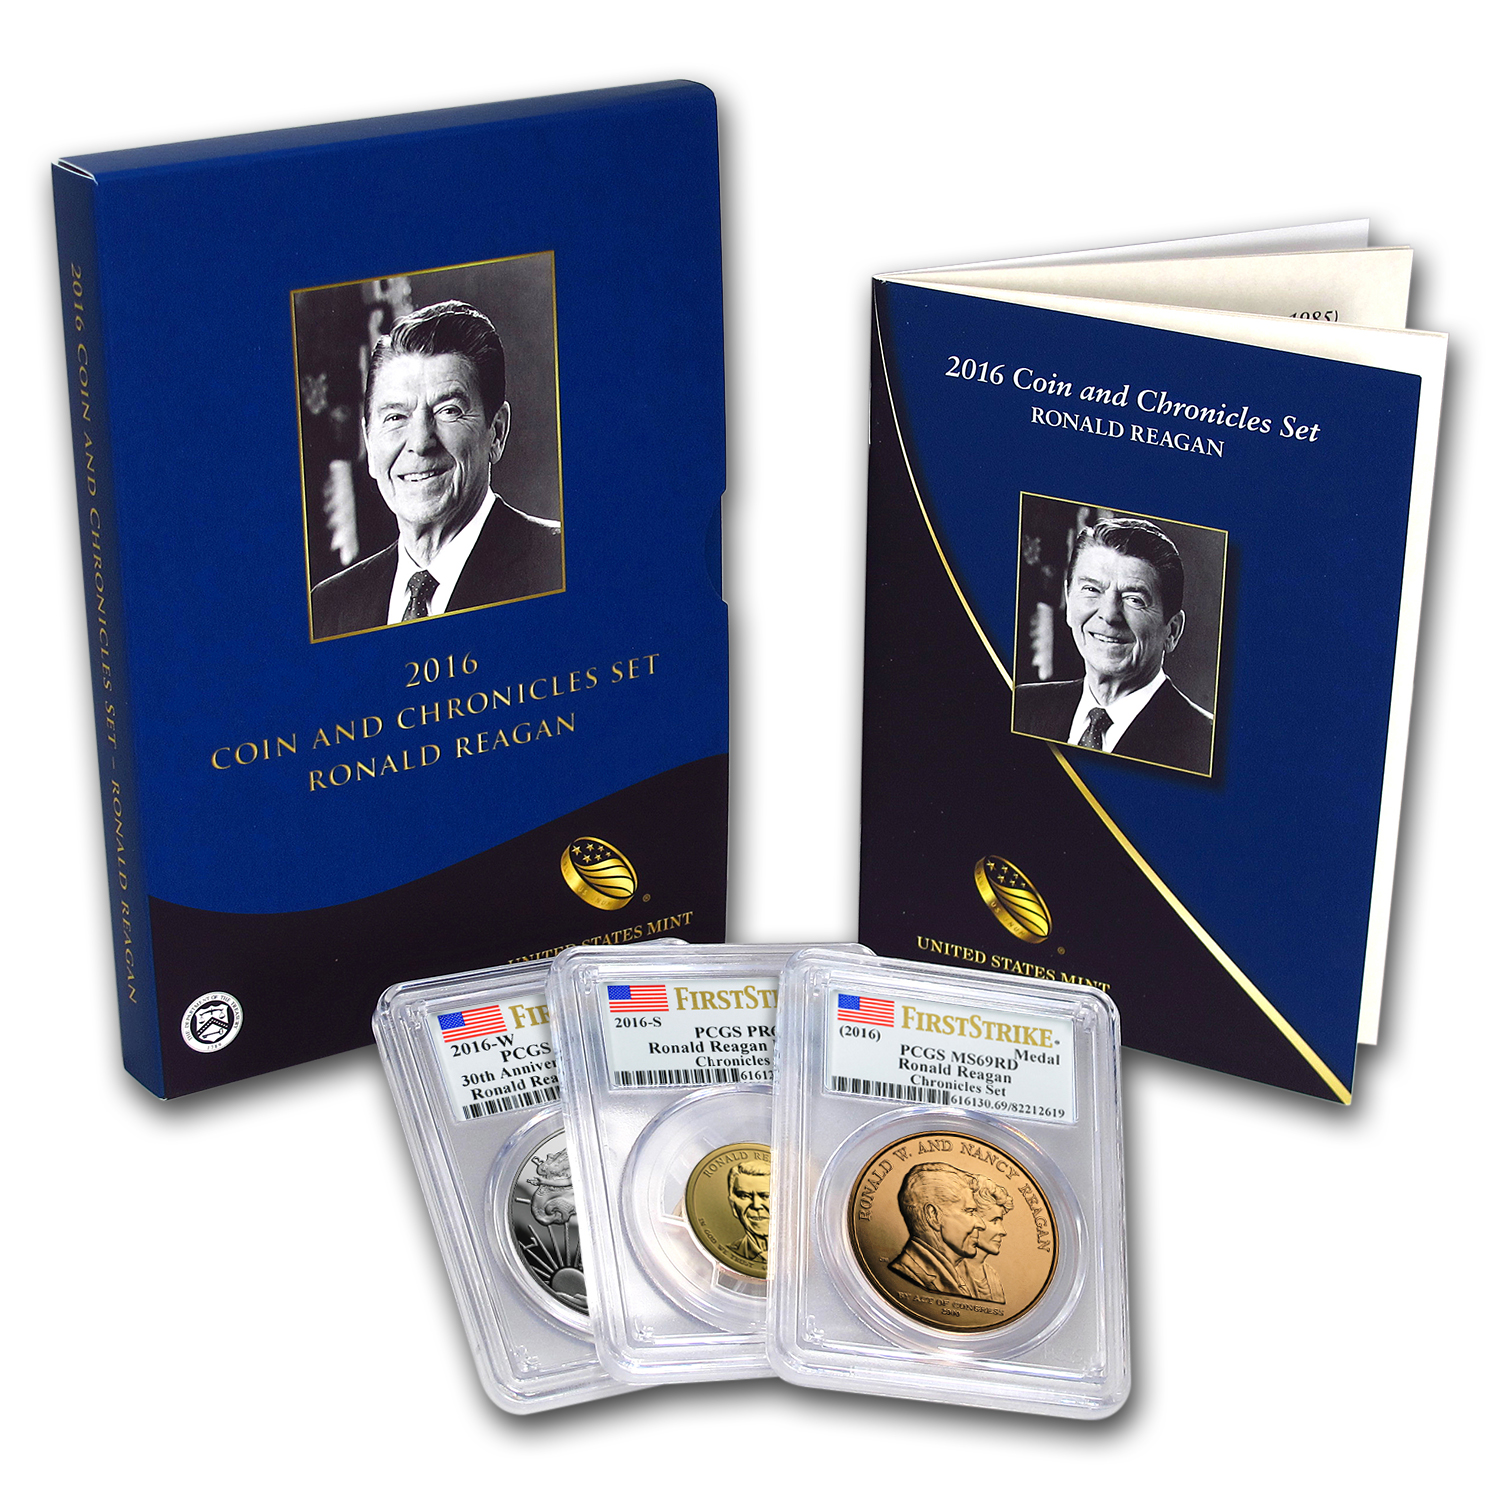 2016 Ronald Reagan Coin/Chronicles Set PR-70, PR-69, PR-69 PCGS